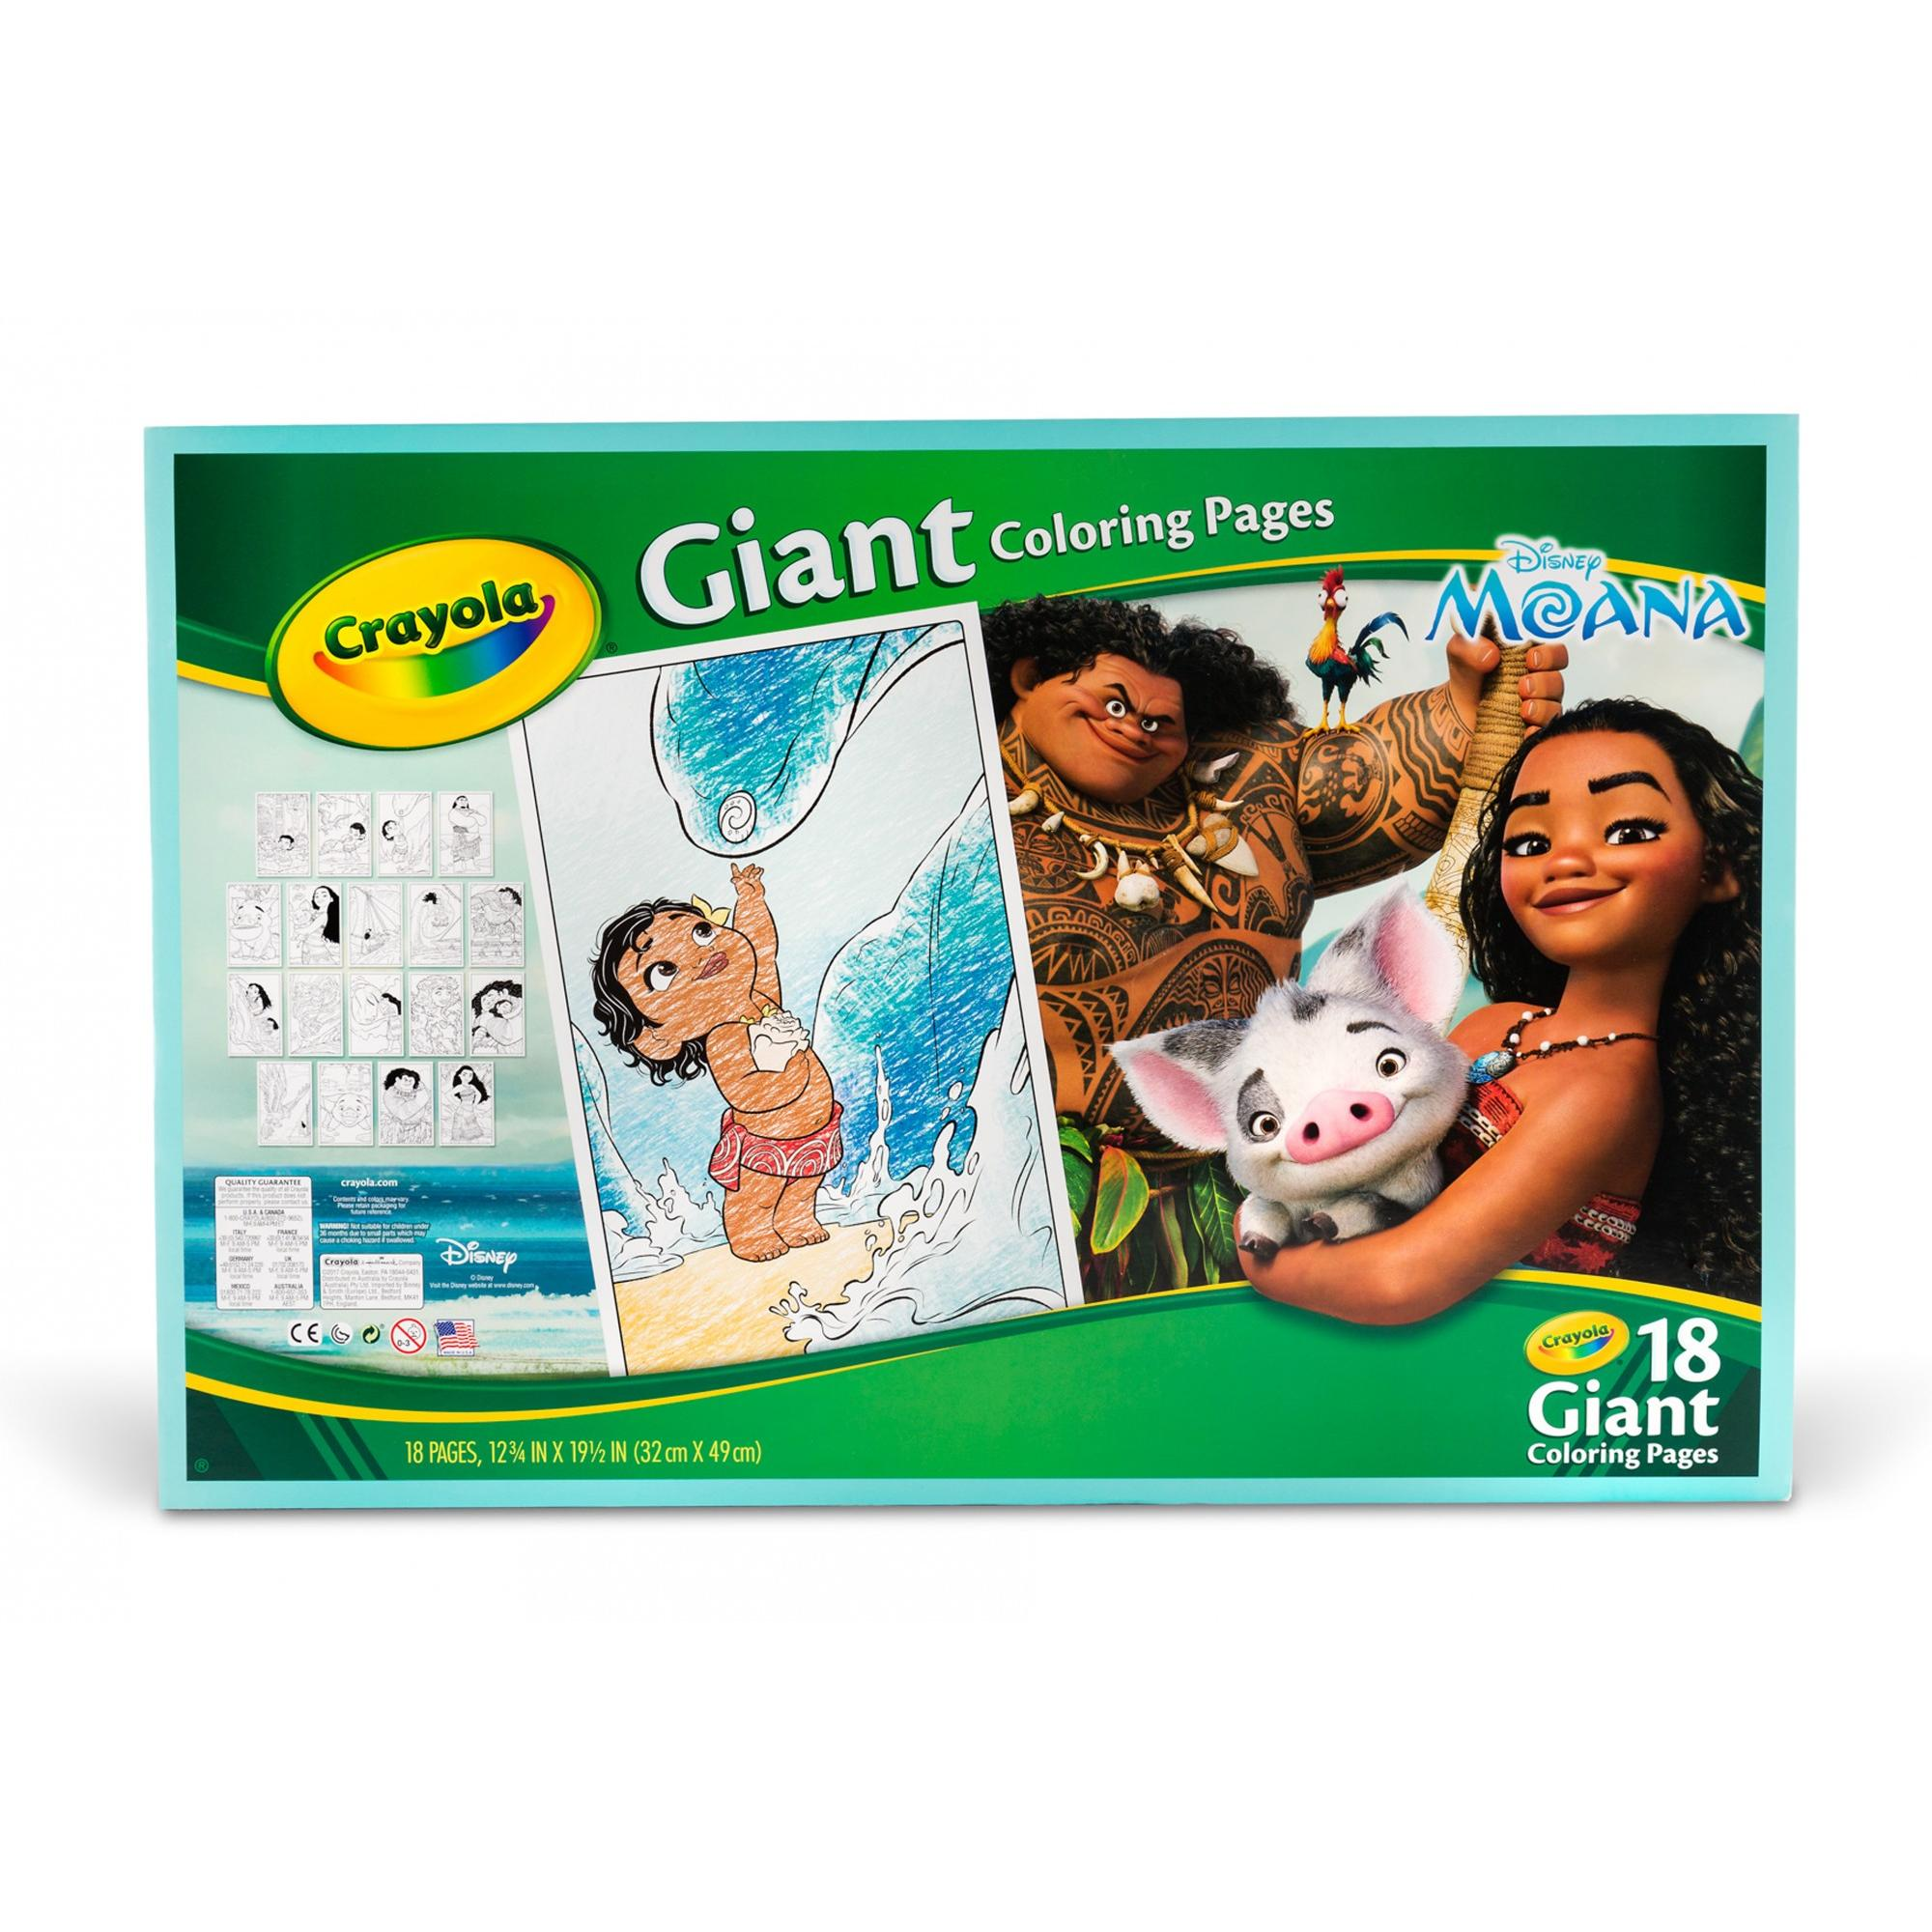 crayola giant coloring pages disney u0027s moana features 18 fun